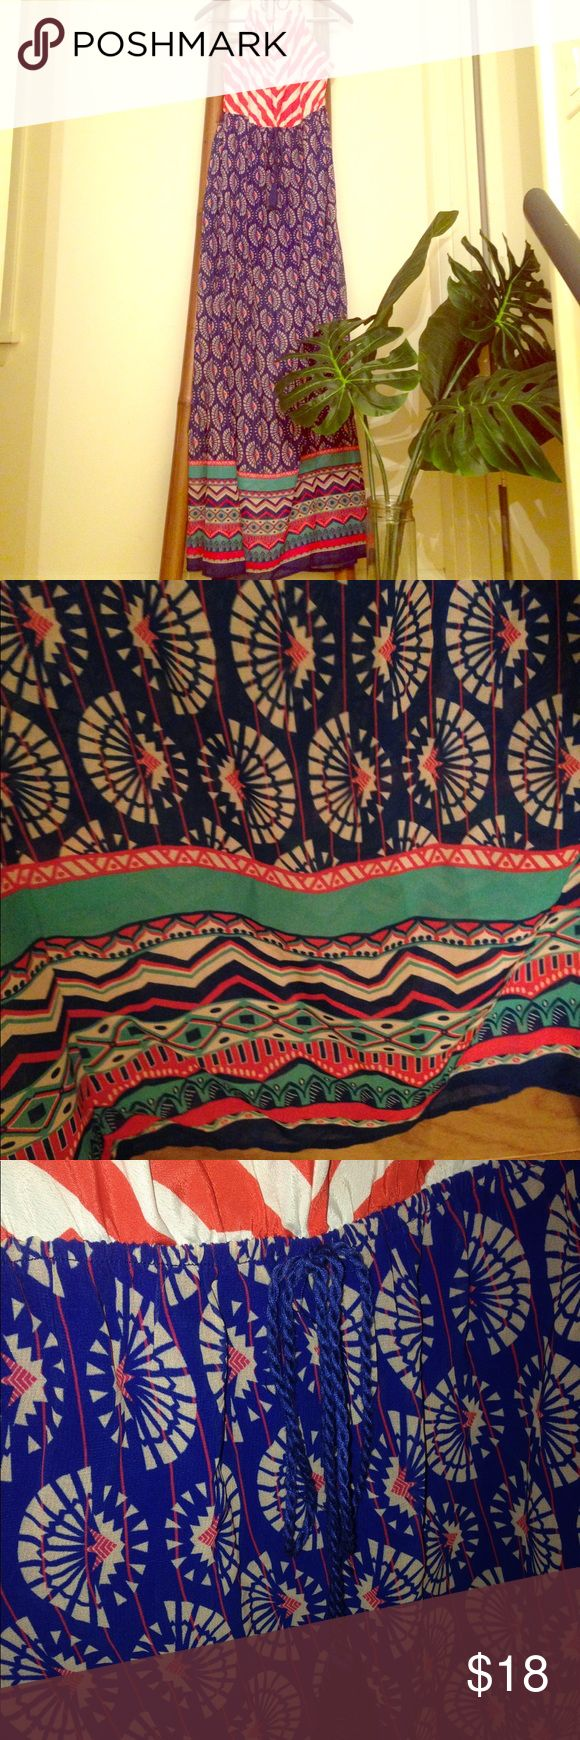 Tribal maxi dress This maxi combines comfort and style to create an effortless beach look! All you need is a tan and espadrilles to set it off! Size large but runs a bit small. Dresses Maxi